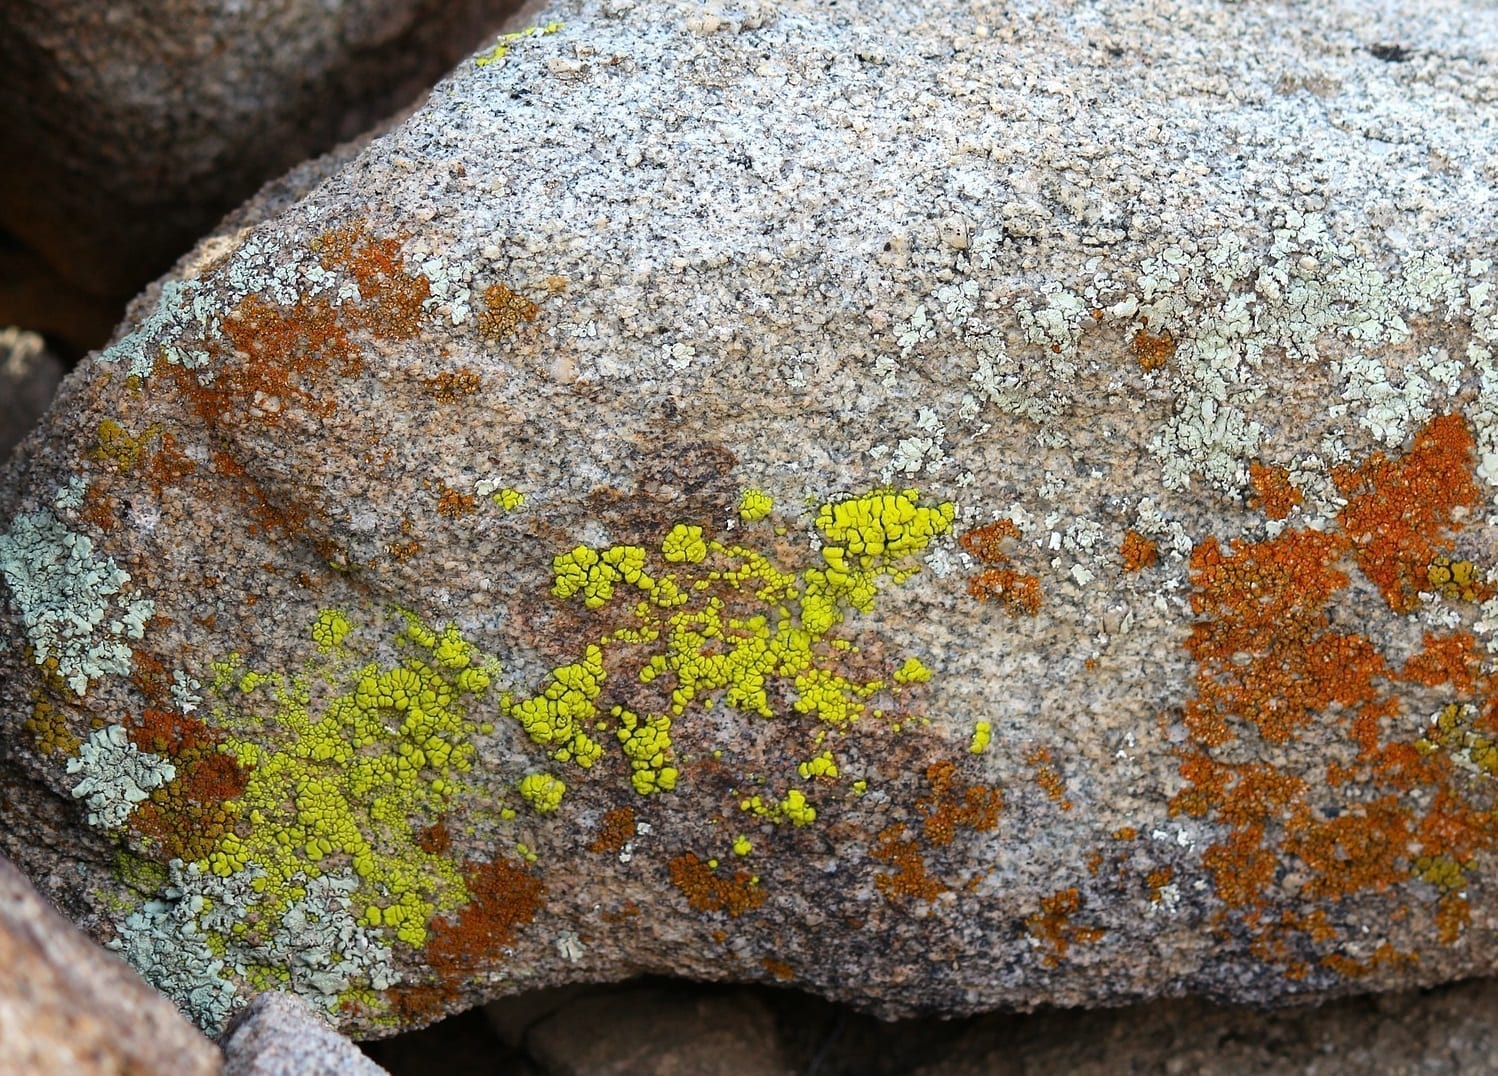 Green and brown lichen on a granite boulder, photo credit: Pixabay user: nightowl